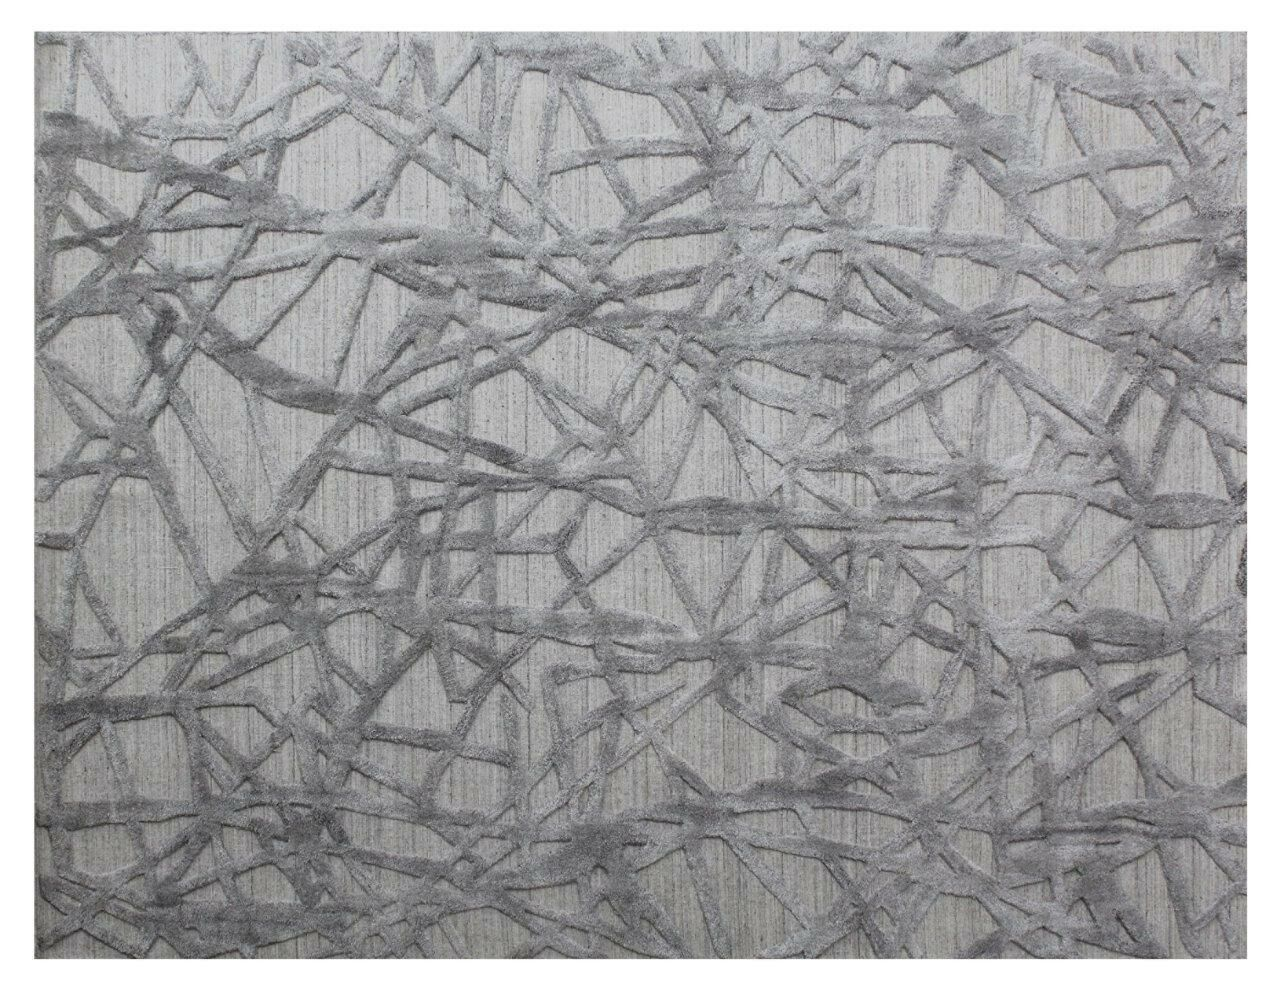 Windsor Hand-Woven Wool Gray Area Rug Rug Size: Rectangle 14' x 18'